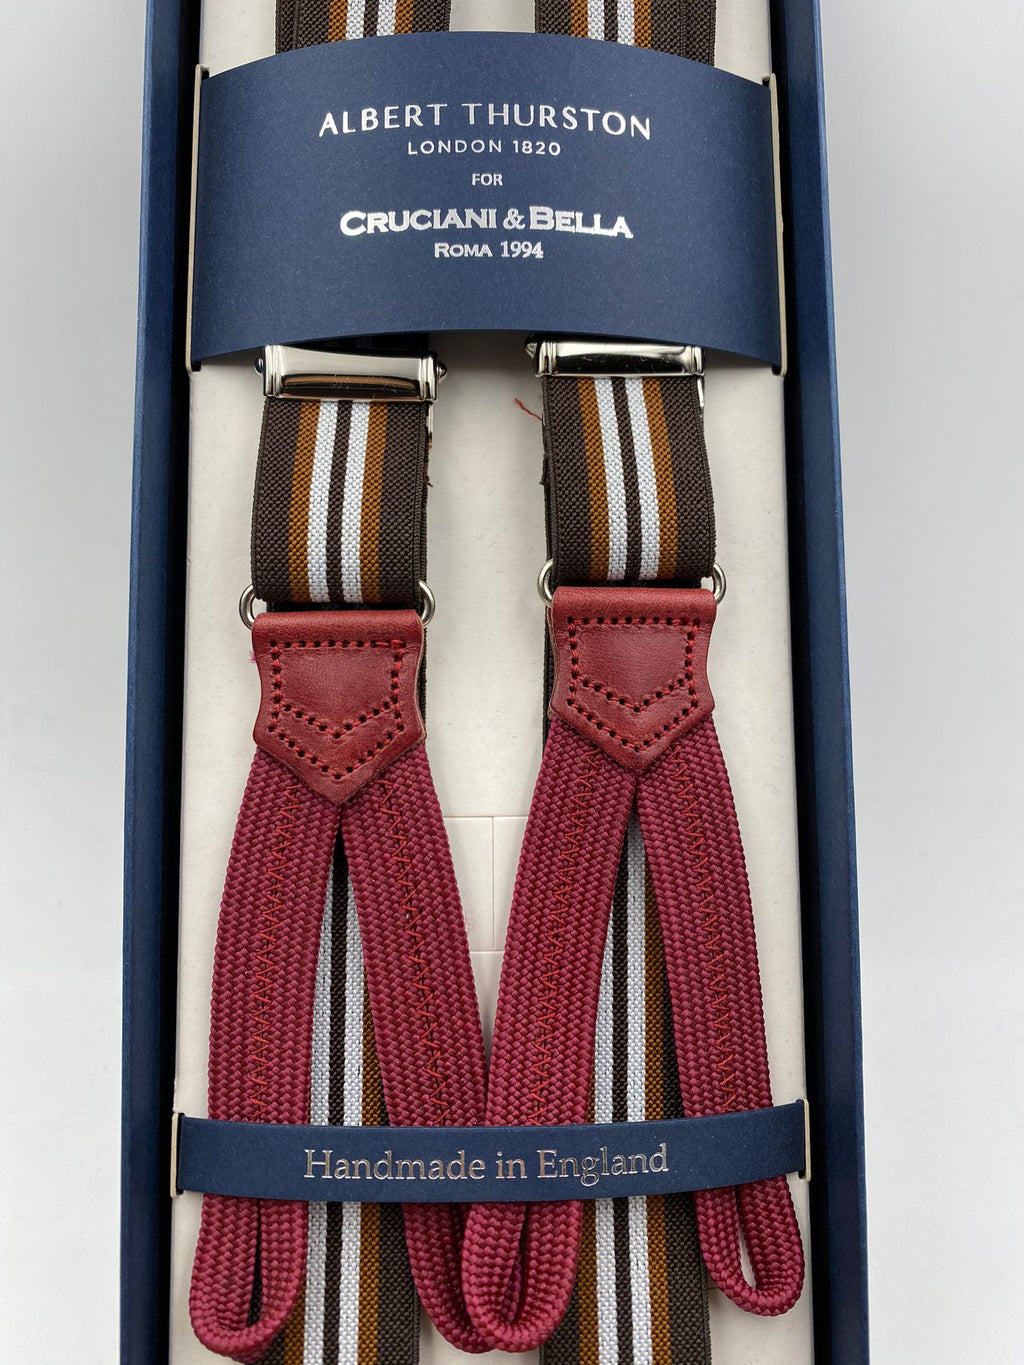 Albert Thurston for Cruciani & Bella Made in England Adjustable Sizing 25 mm elastic braces Brown and White Stripes Braid ends Y-Shaped Nickel Fittings Size: L #4903